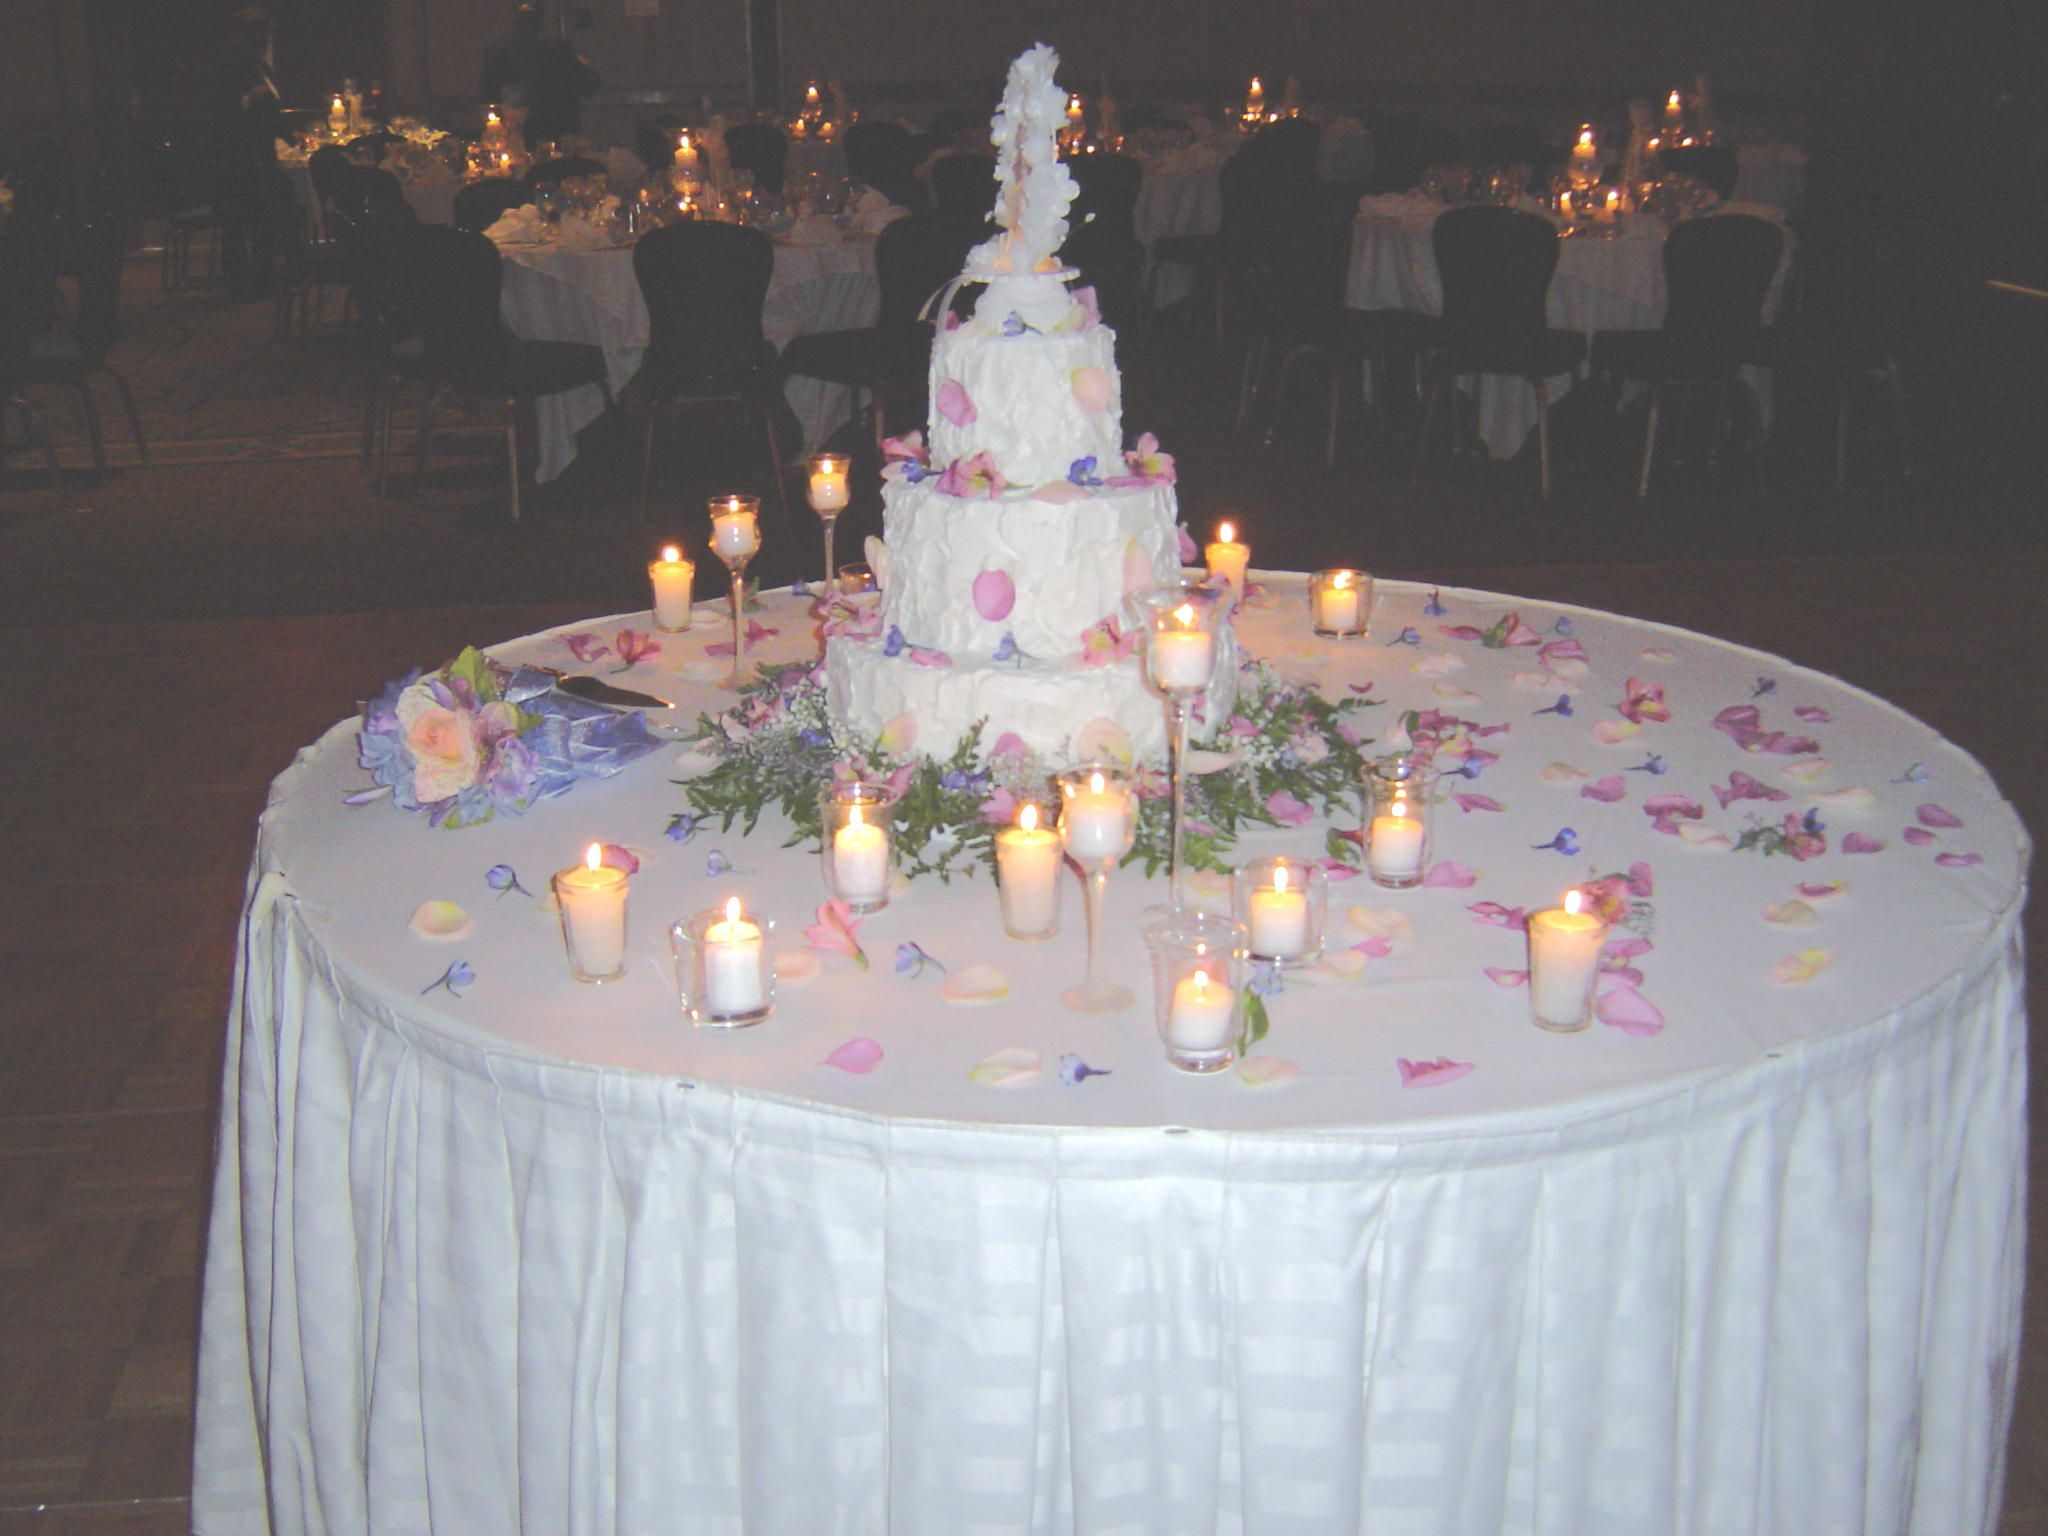 Wedding reception cake table decorating caketable22 wedding wedding reception cake table decorating caketable22 wedding cake table wedding decorations junglespirit Choice Image